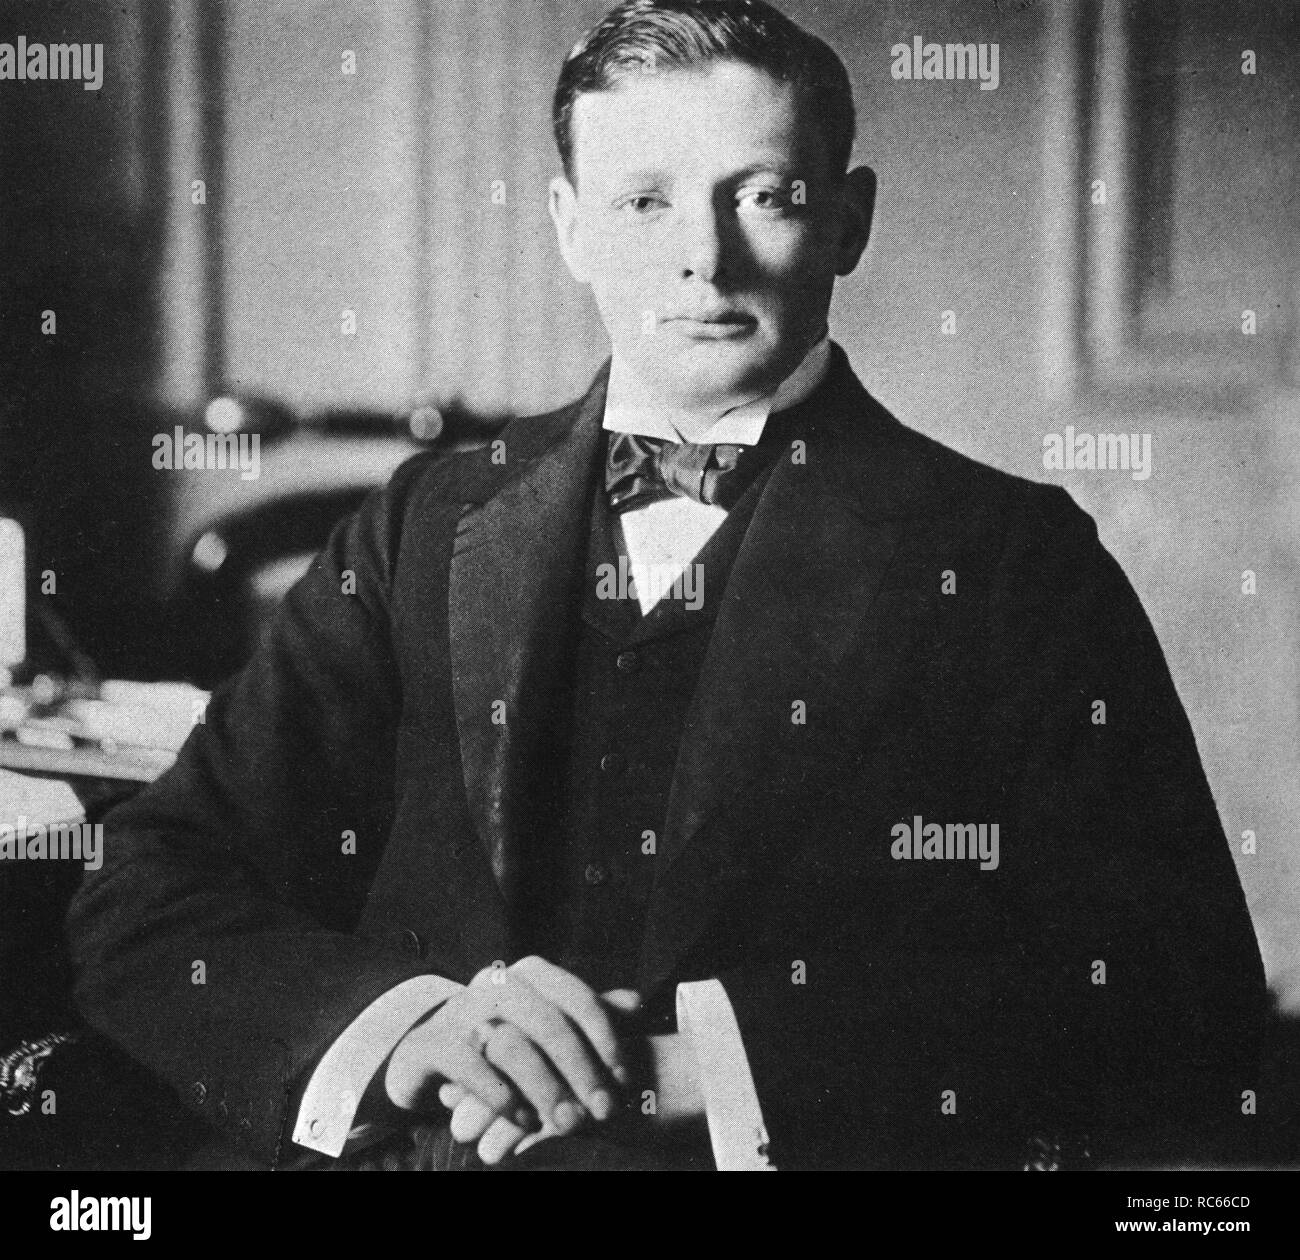 Winston Churchill, Conservative M.P. for Oldham, 1901 - Stock Image